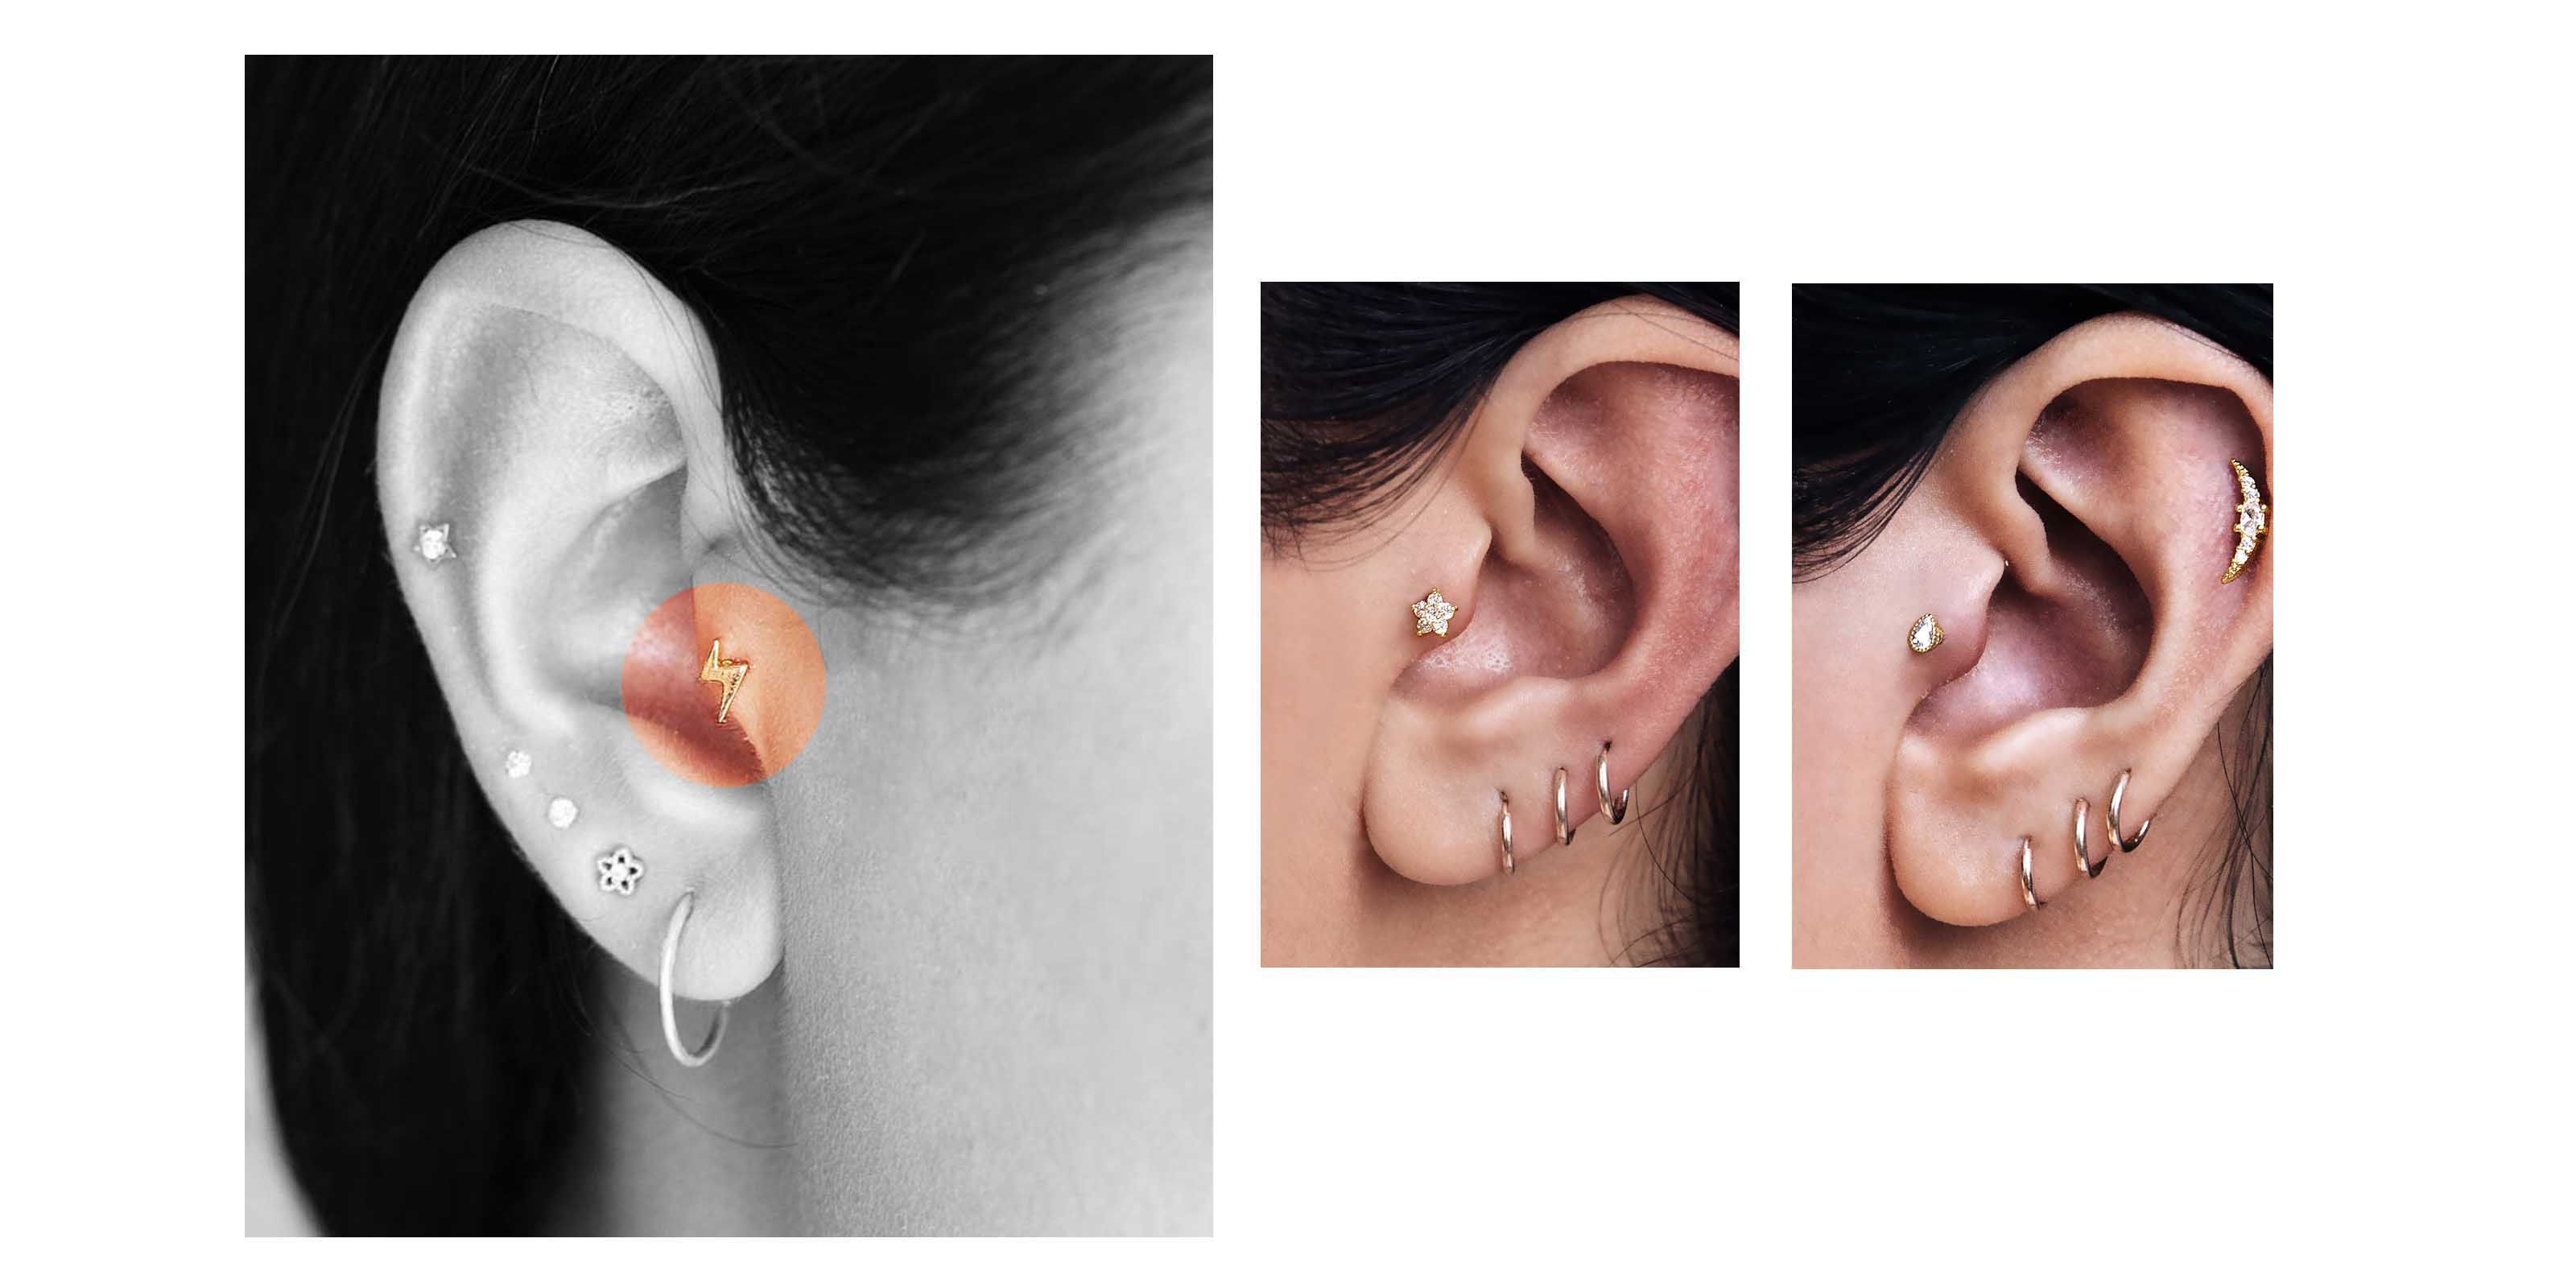 tragus and cartilage piercings